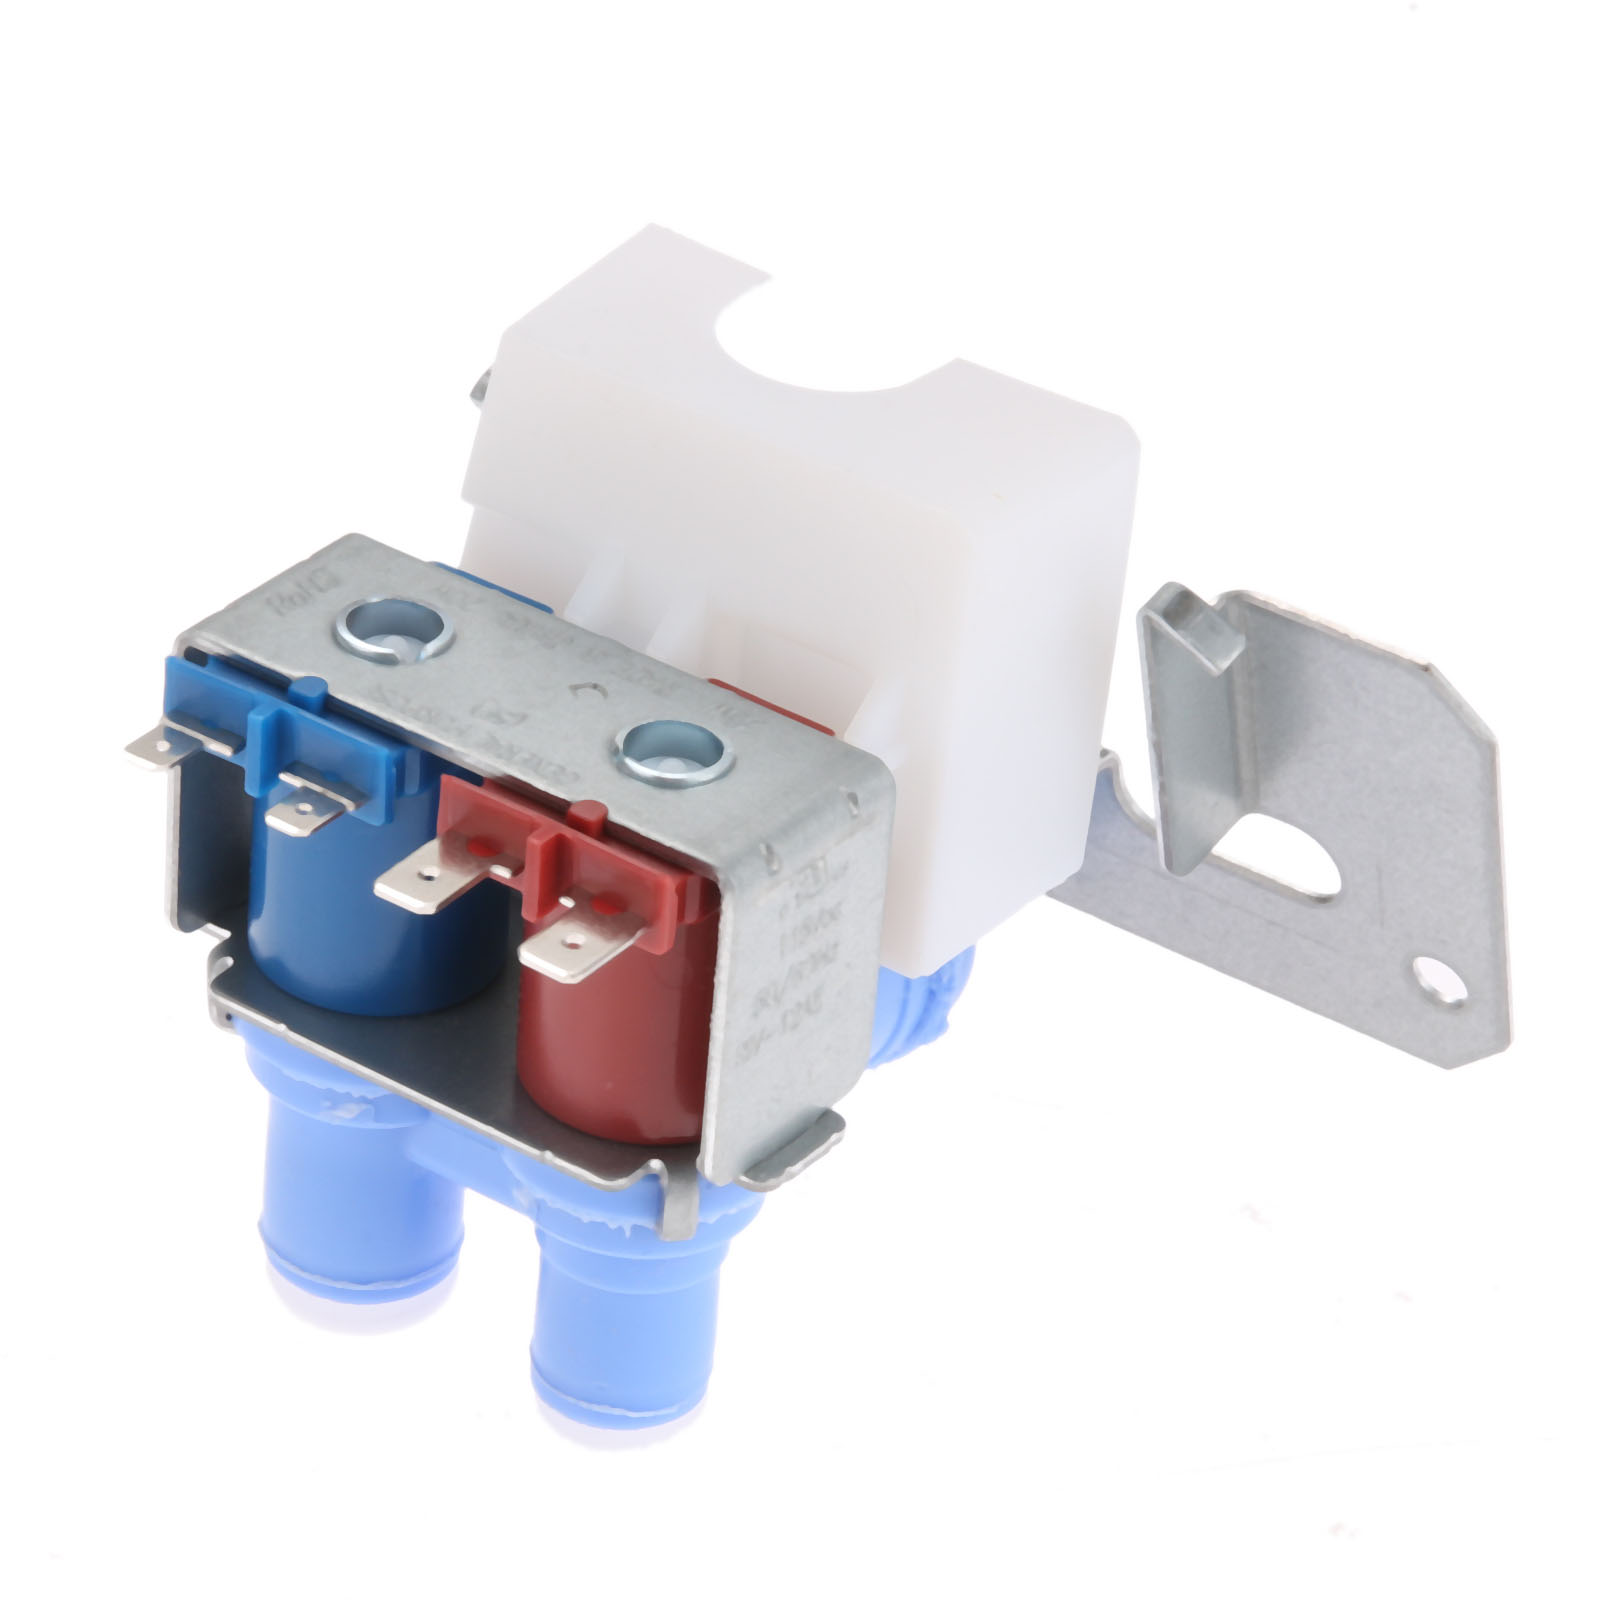 WR57X10051 Refrigerator Water Valve Fit For Sears Kenmore WR02X10105 WR57X10018